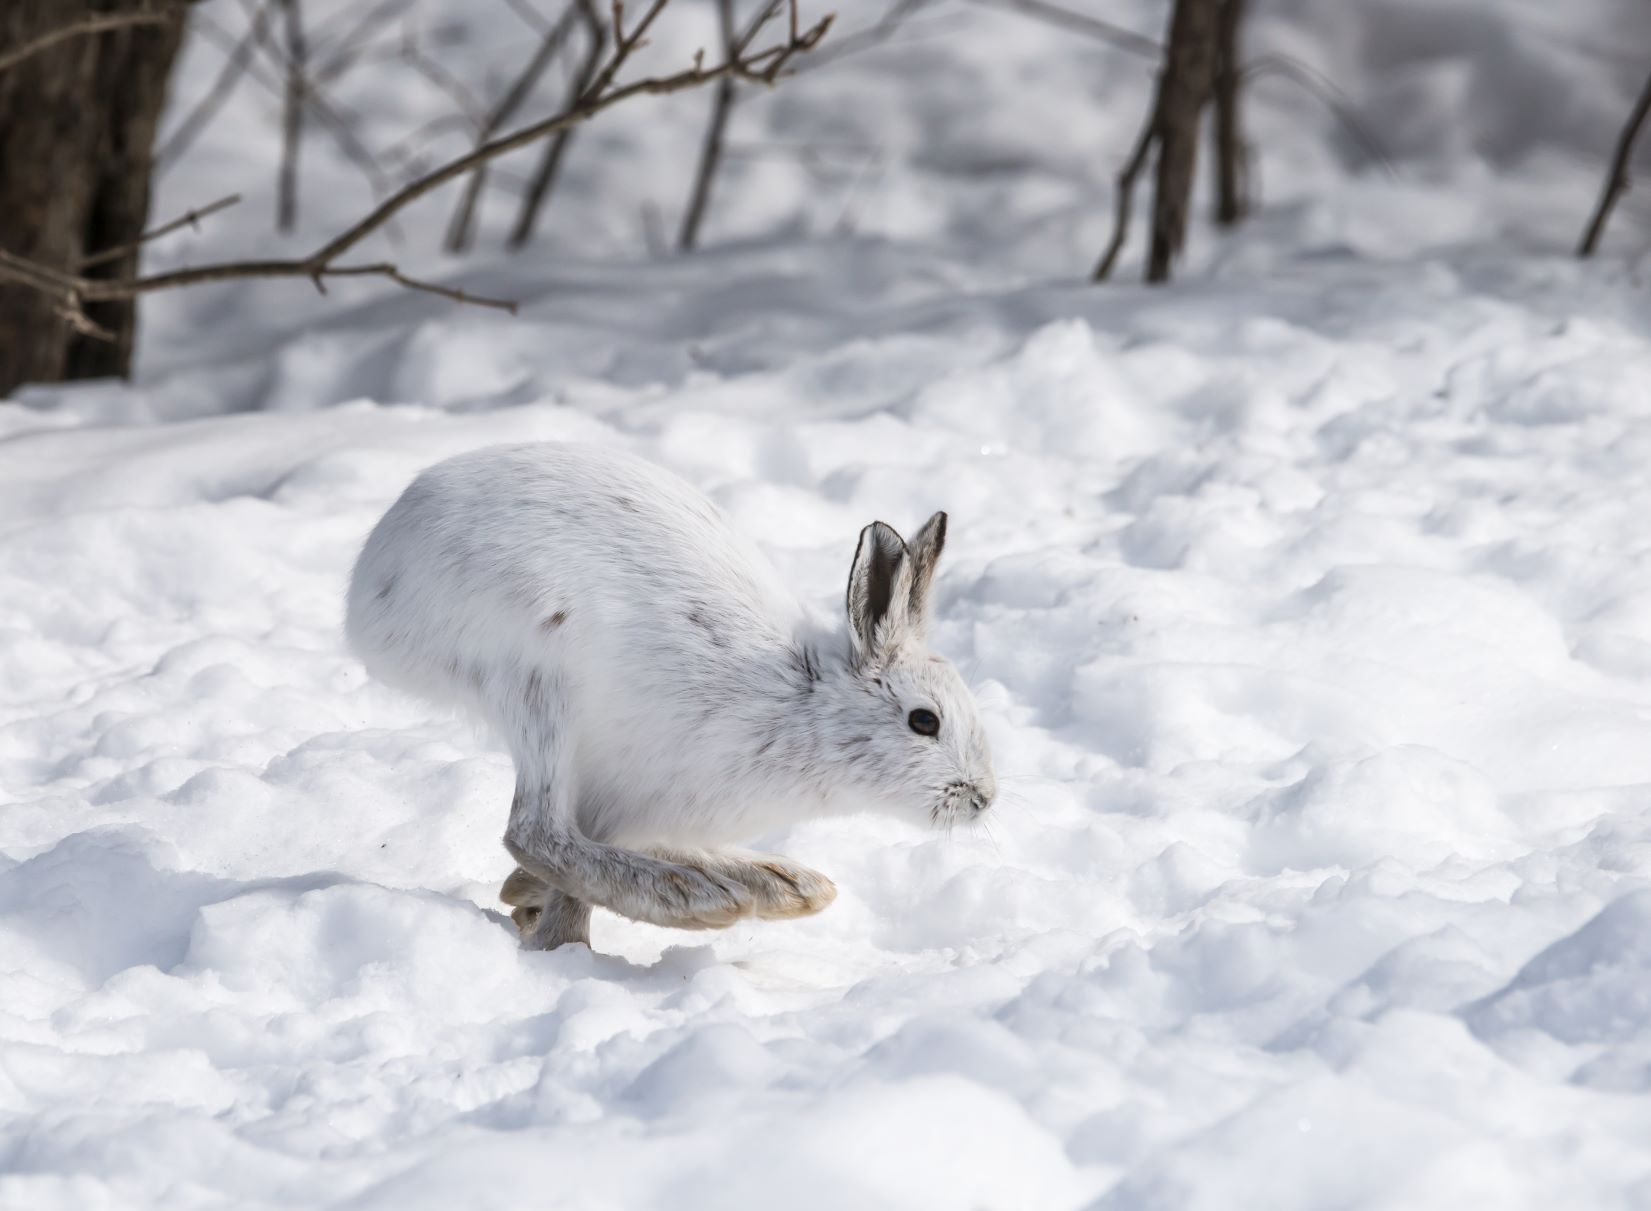 Snowshoe Hare hopping through snow.